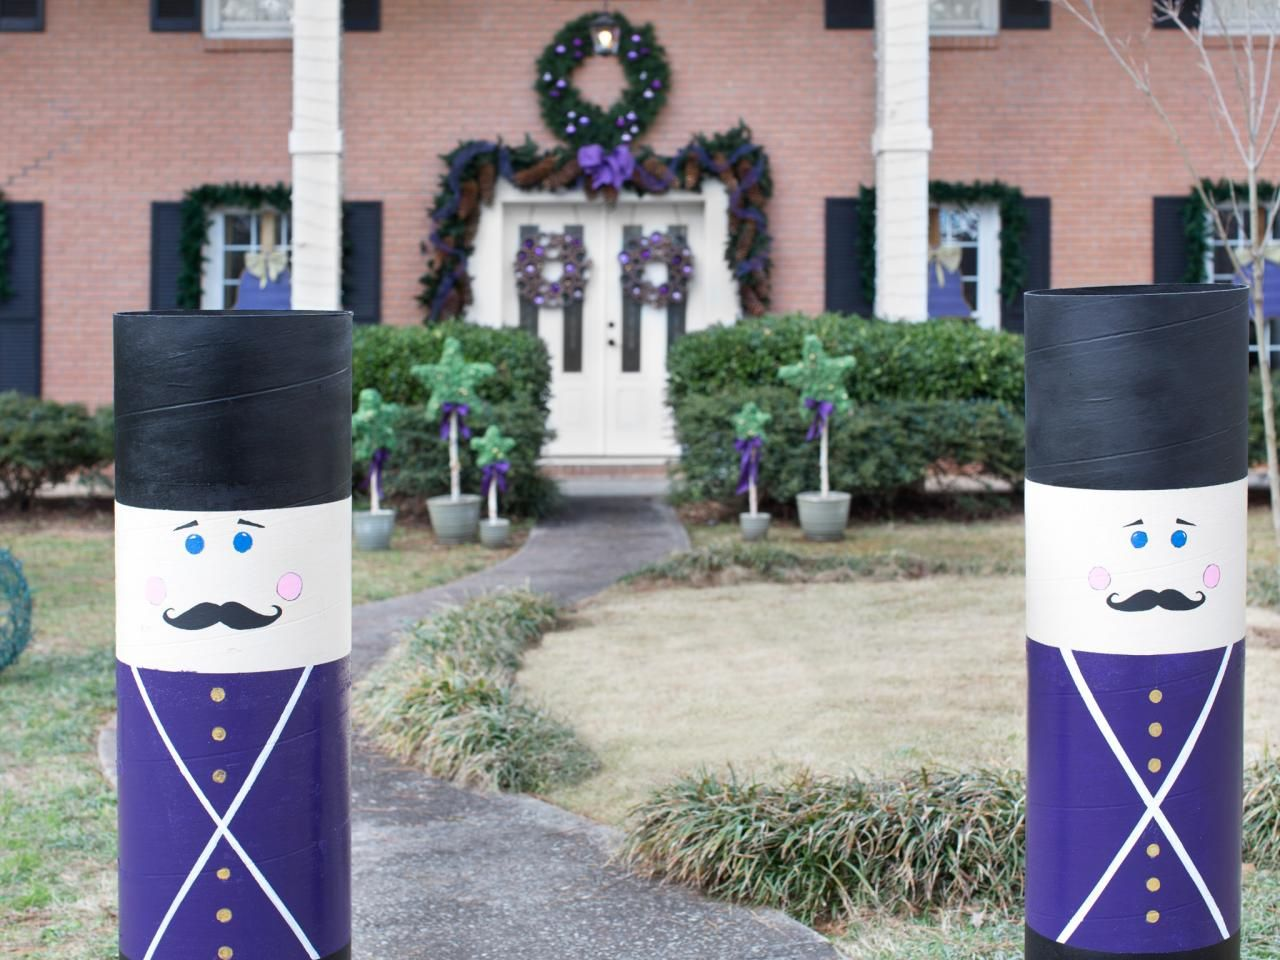 How to make a nutcracker christmas decoration - Christmas Decor How To Make Giant Nutcrackers